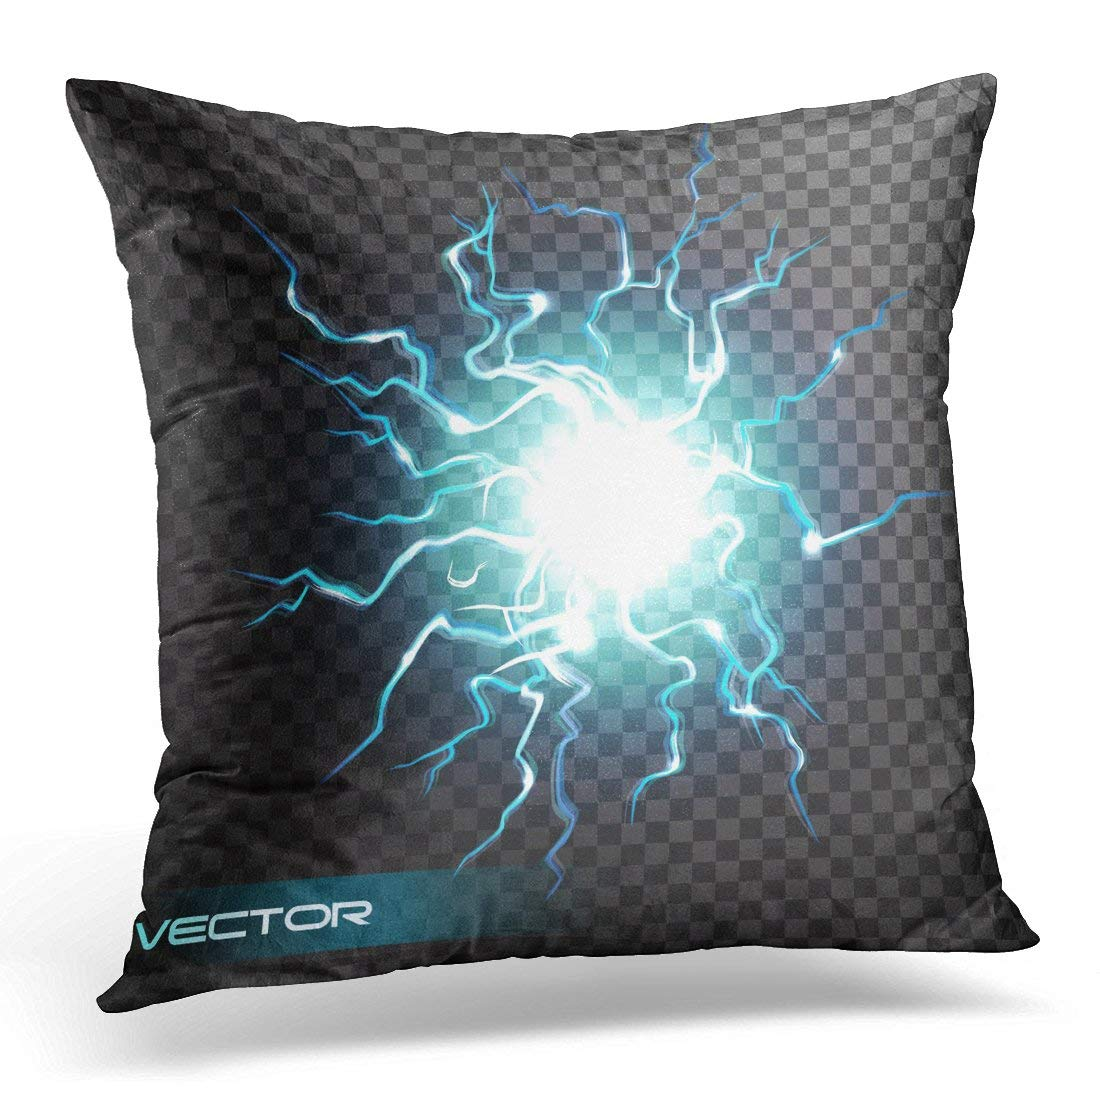 USART Lightning Flash Light Thunder Spark Effect on Ball of Electricity Blast Storm Strike in Sky Magic Energy Pillow Cover 16x16 Inches Throw Pillow Case Cushion Cover